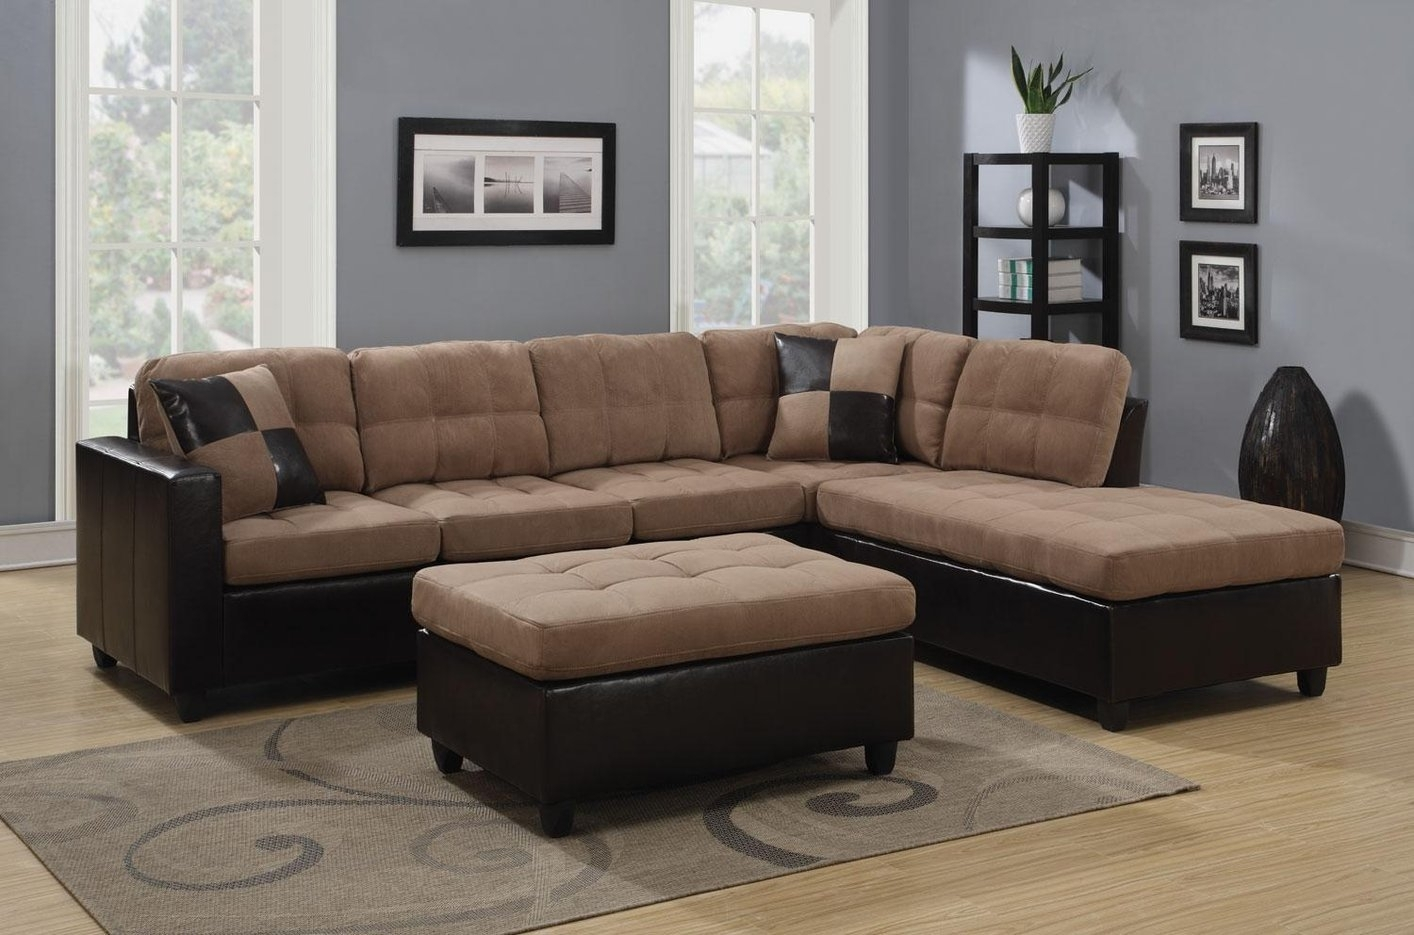 Sectional Sofa Design: Amazing Beige Sectional Sofas Beige Leather Inside Beige Sectional Sofas (View 6 of 10)